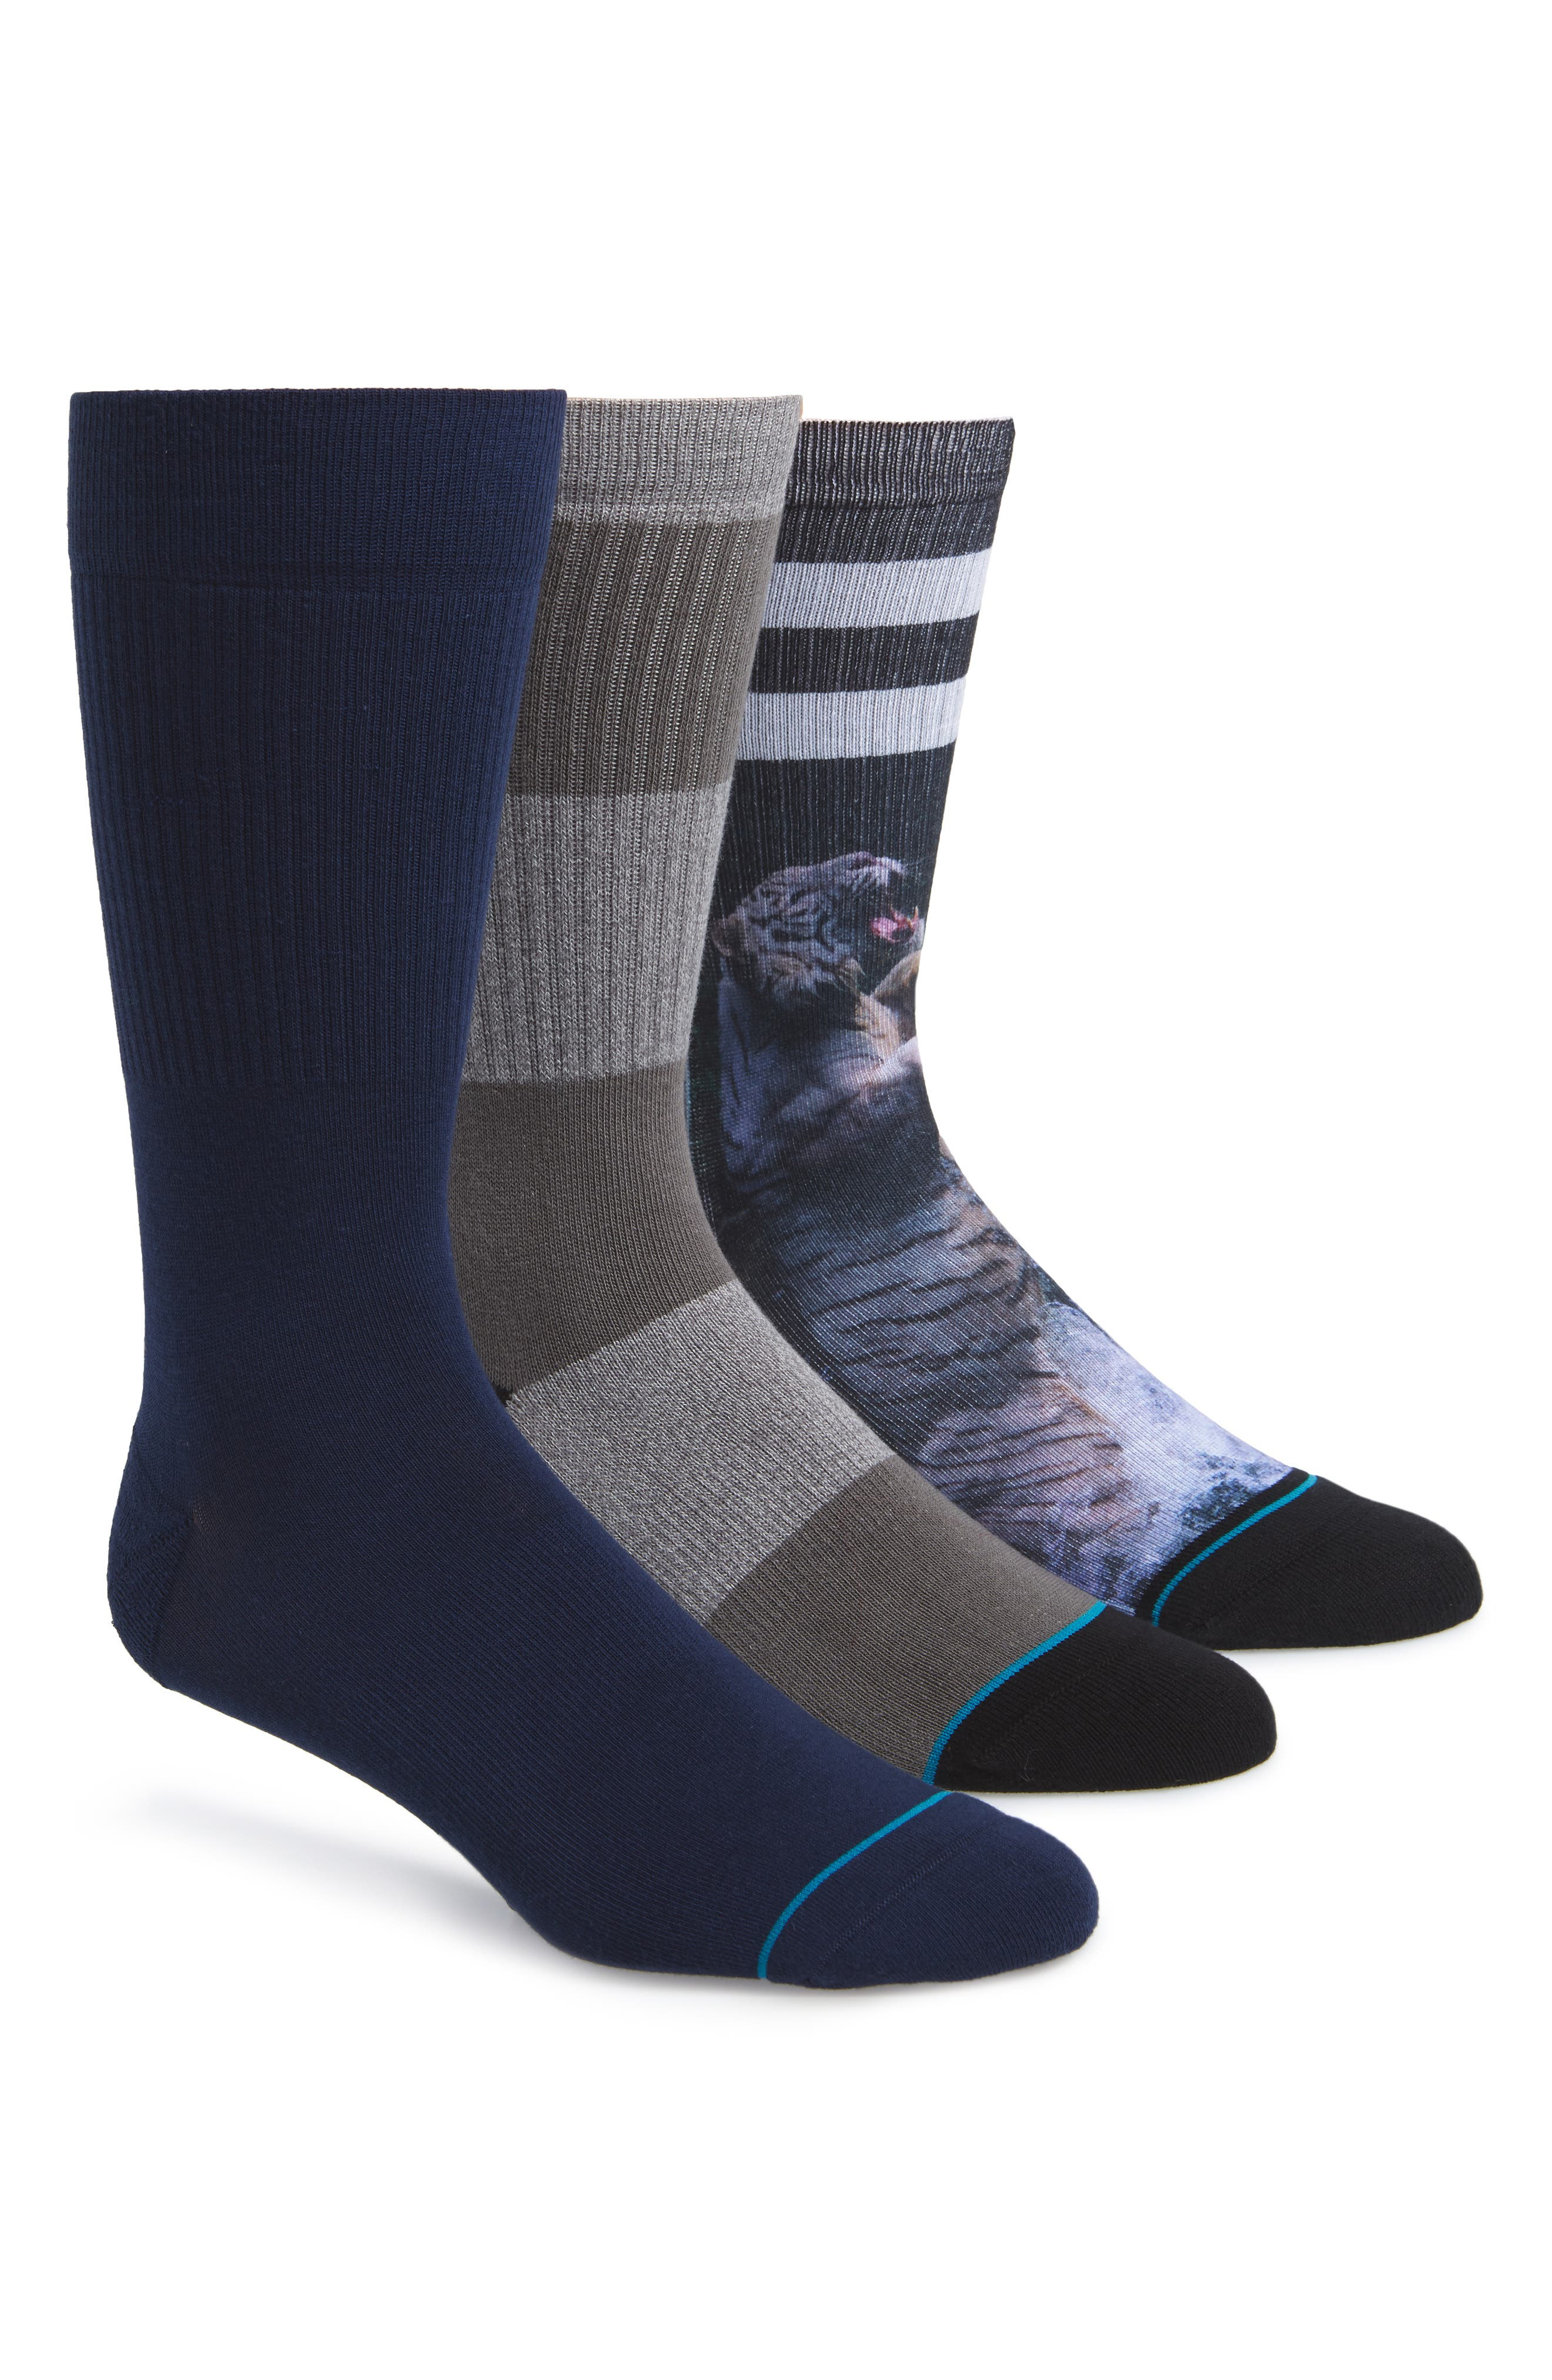 Khan 3-Pack Crew Socks,                             Main thumbnail 1, color,                             BLACK/ GREY/ NAVY